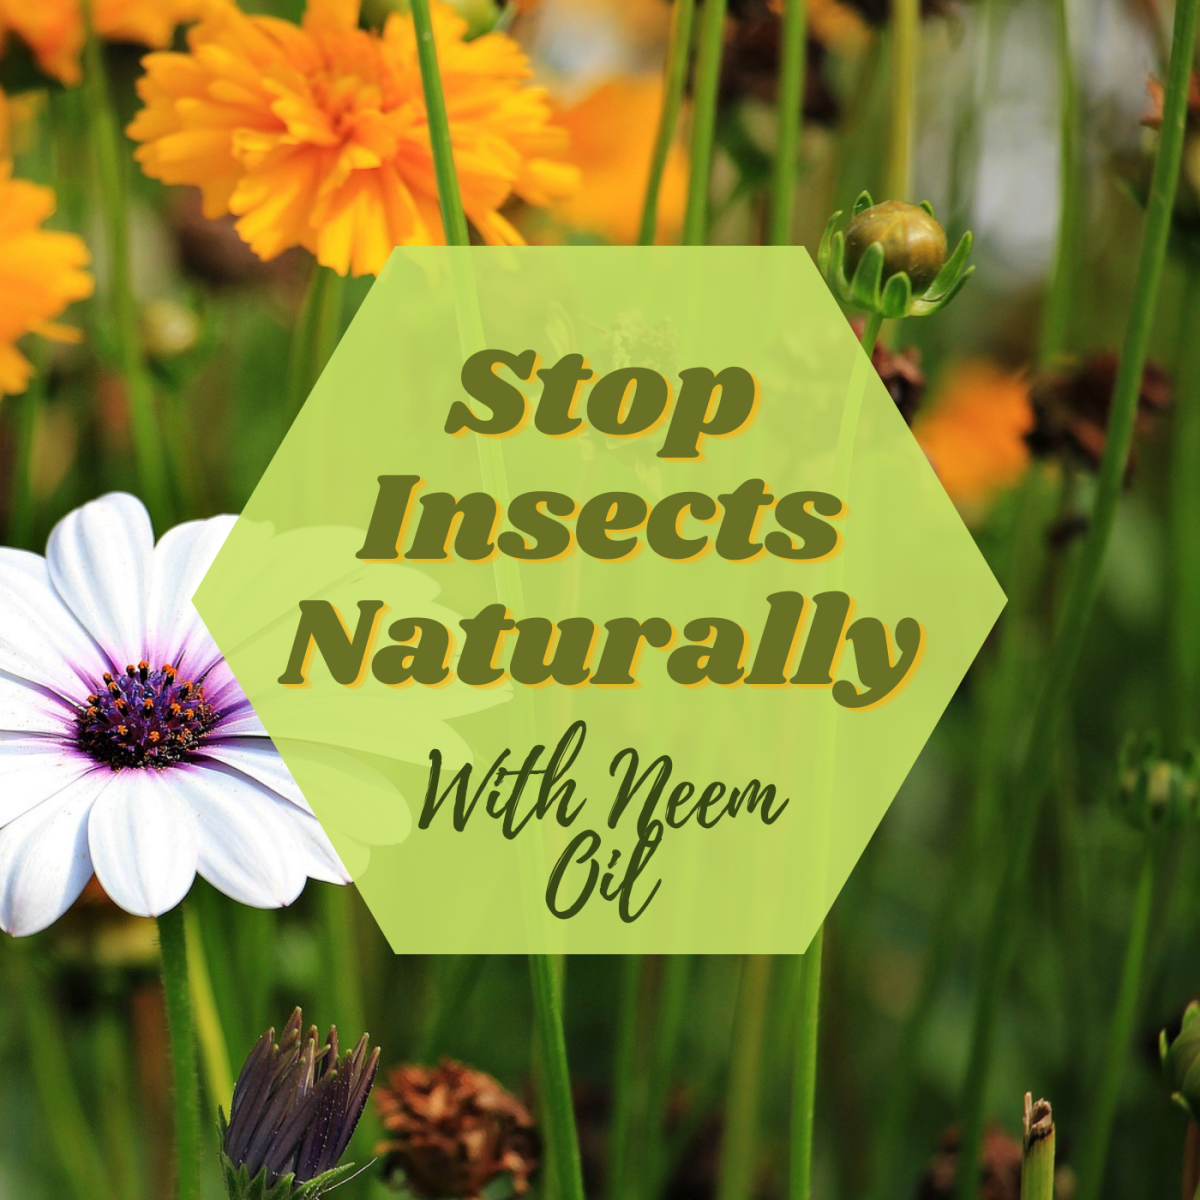 Get rid of your insect problem with a natural insecticide like neem oil.